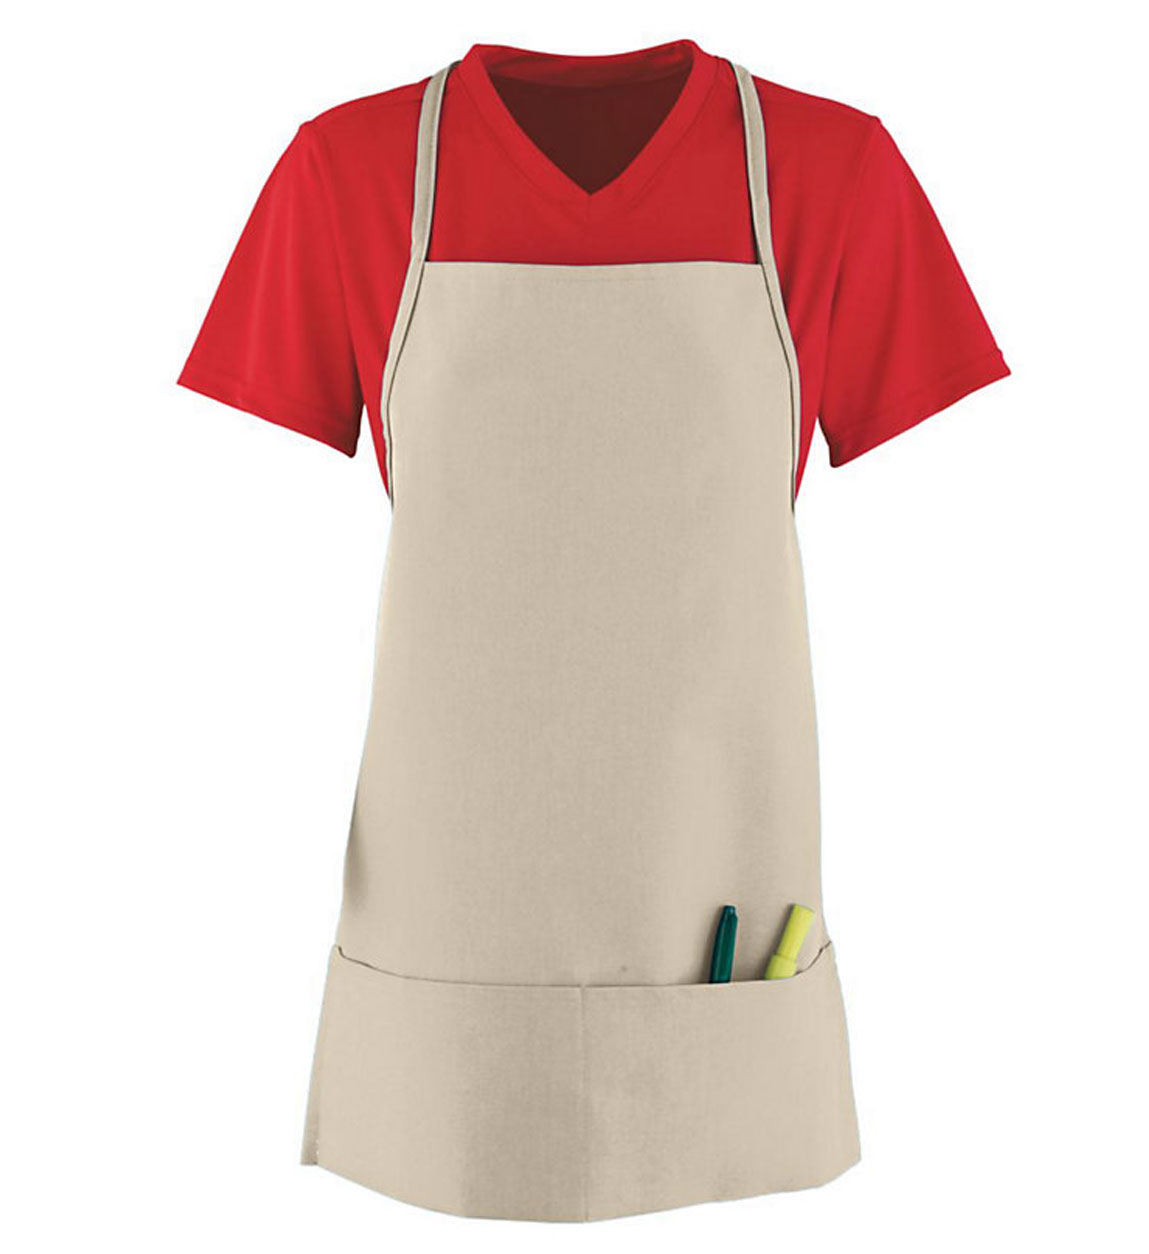 Medium Apron With Pouch